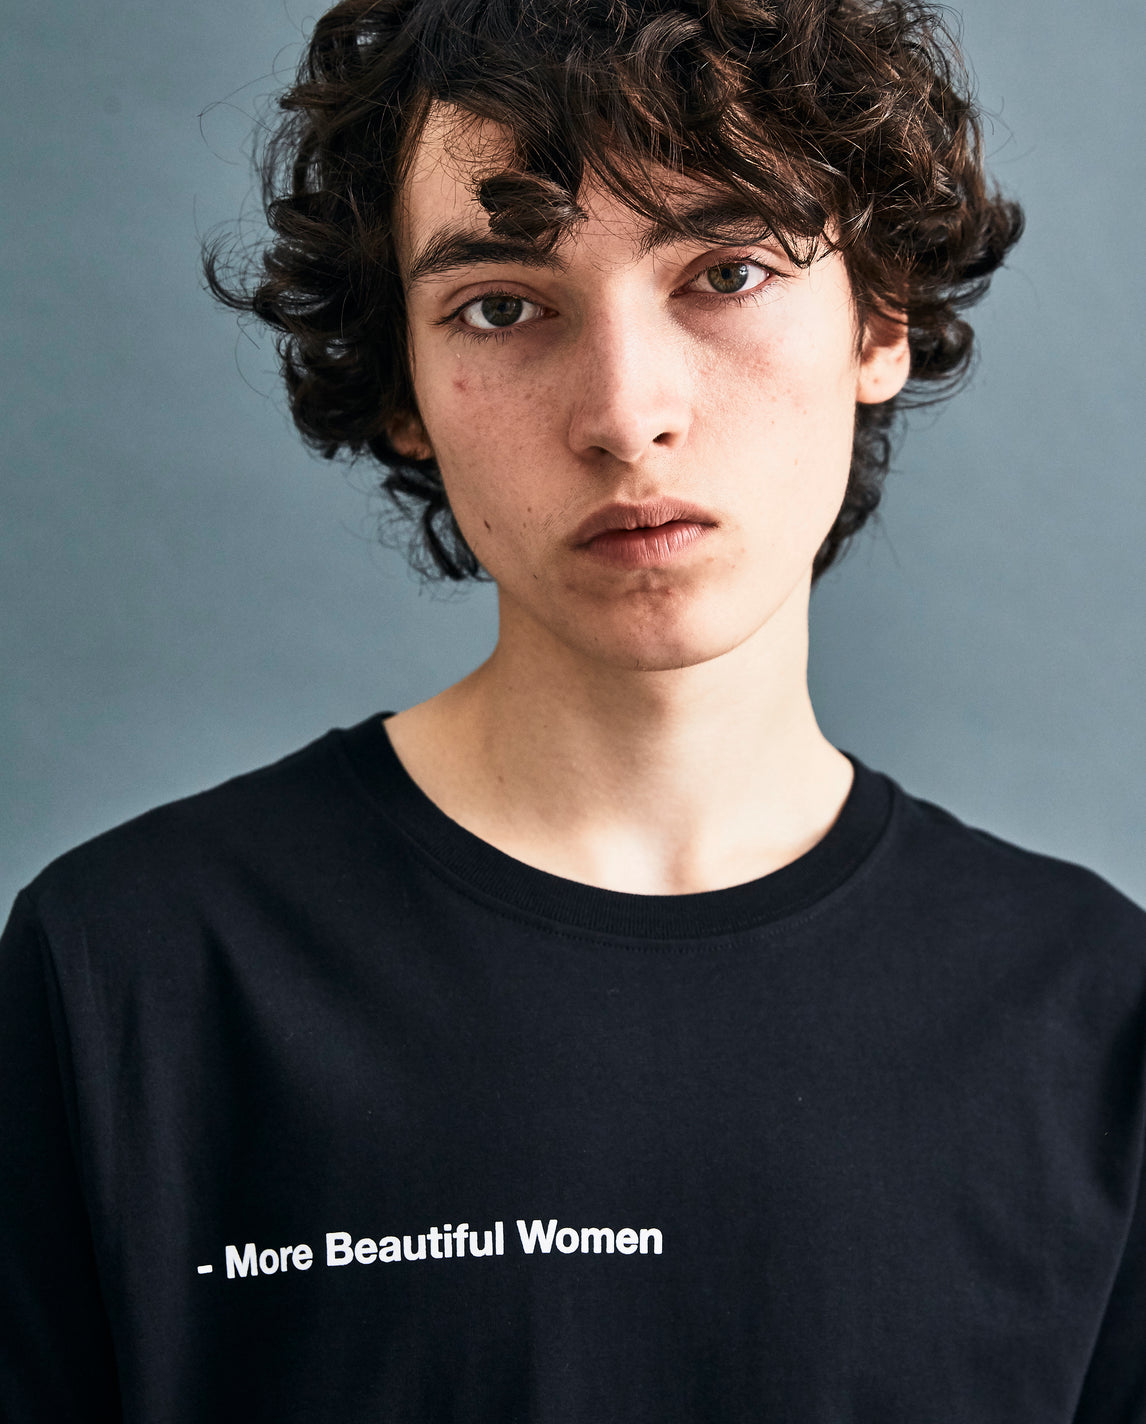 Black 'More Beautiful Women' T-shirt